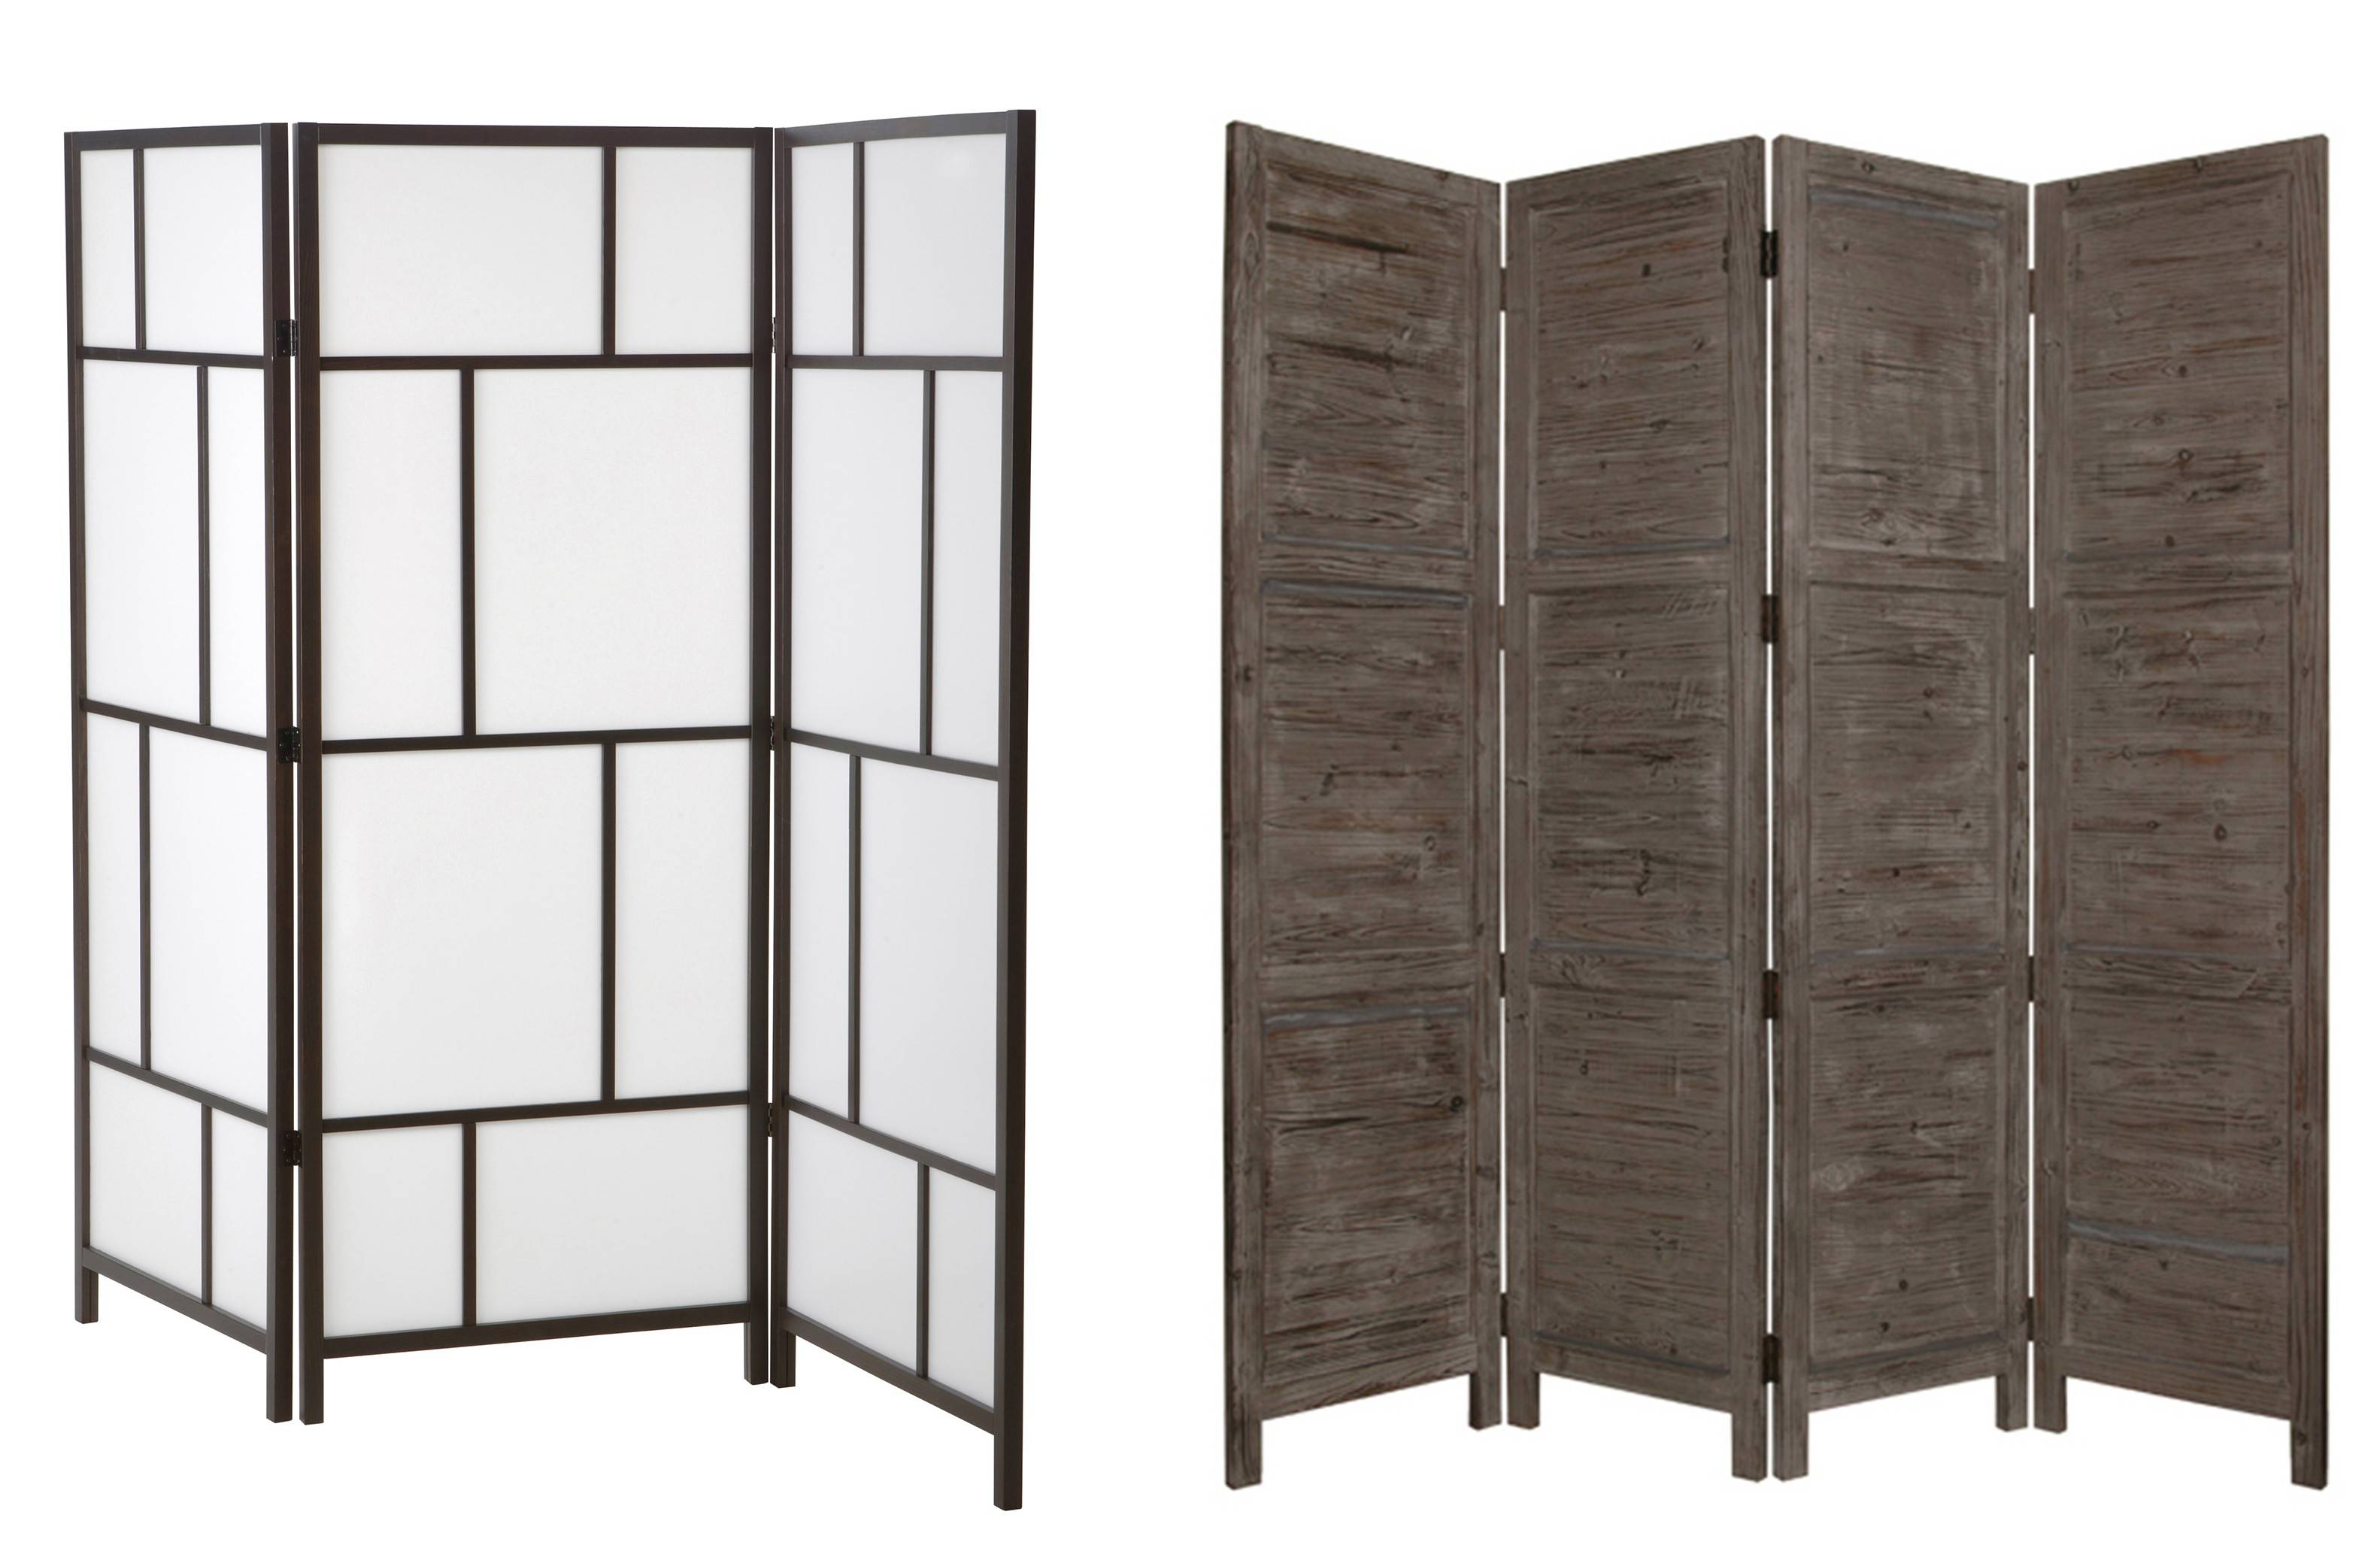 At left, IKEA's Riser room divider appeals to modern tastes. Screen Gems' rustic Nantucket room divider, right, comes in six colors.